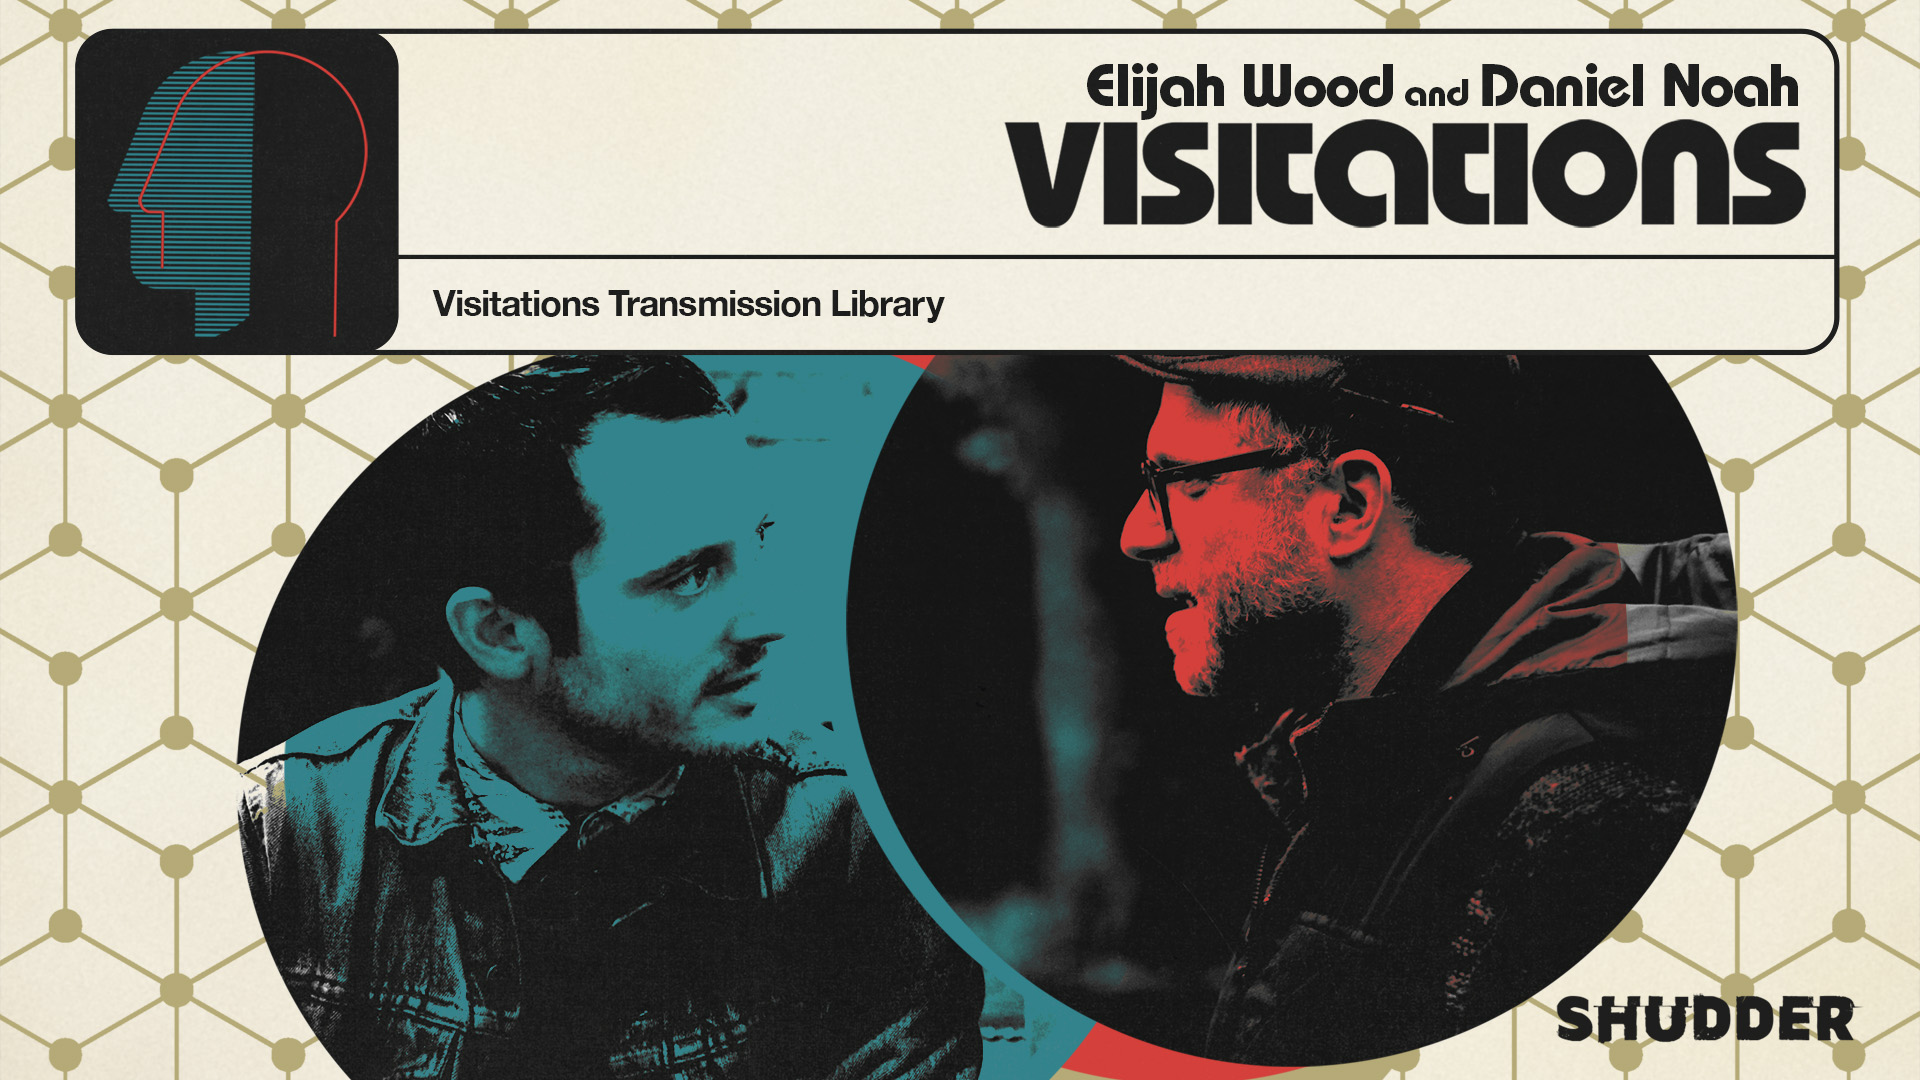 [News] Trailer Release for VISITATIONS WITH ELIJAH WOOD & DANIEL NOAH Podcast